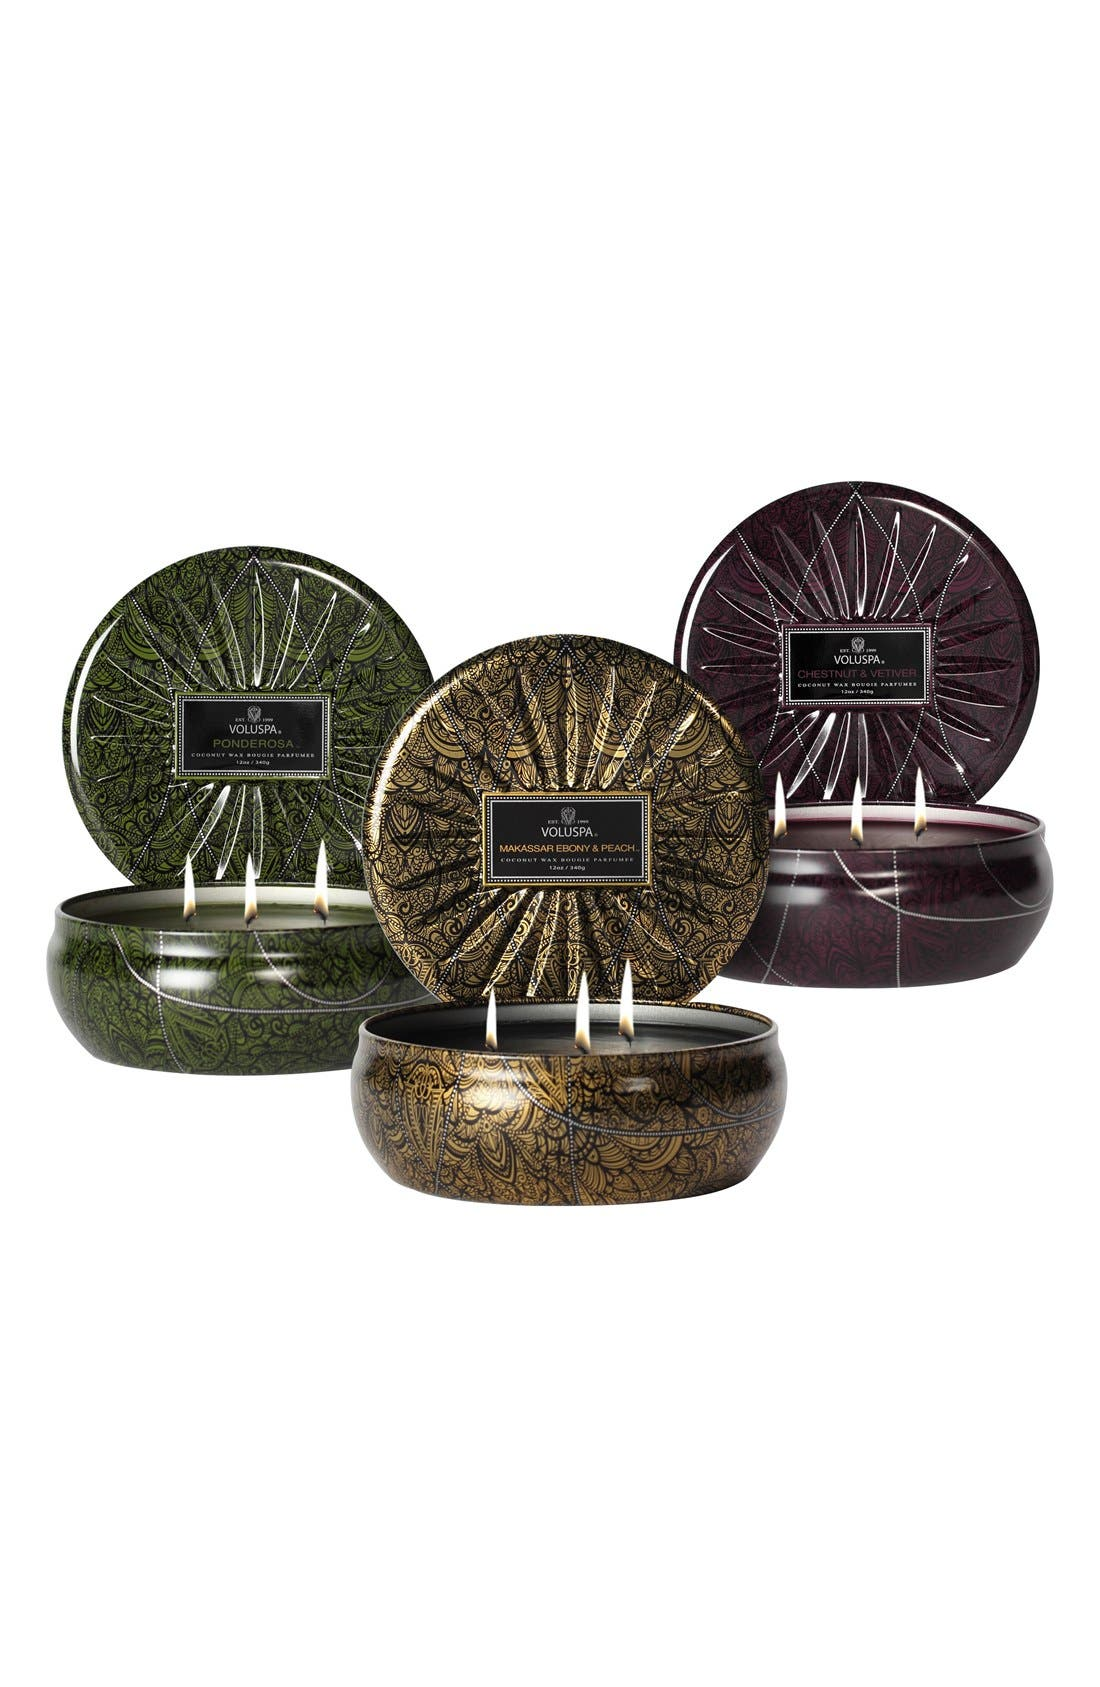 Alternate Image 1 Selected - Voluspa 'Vermeil' Three-Wick Candle Trio ($60 Value)